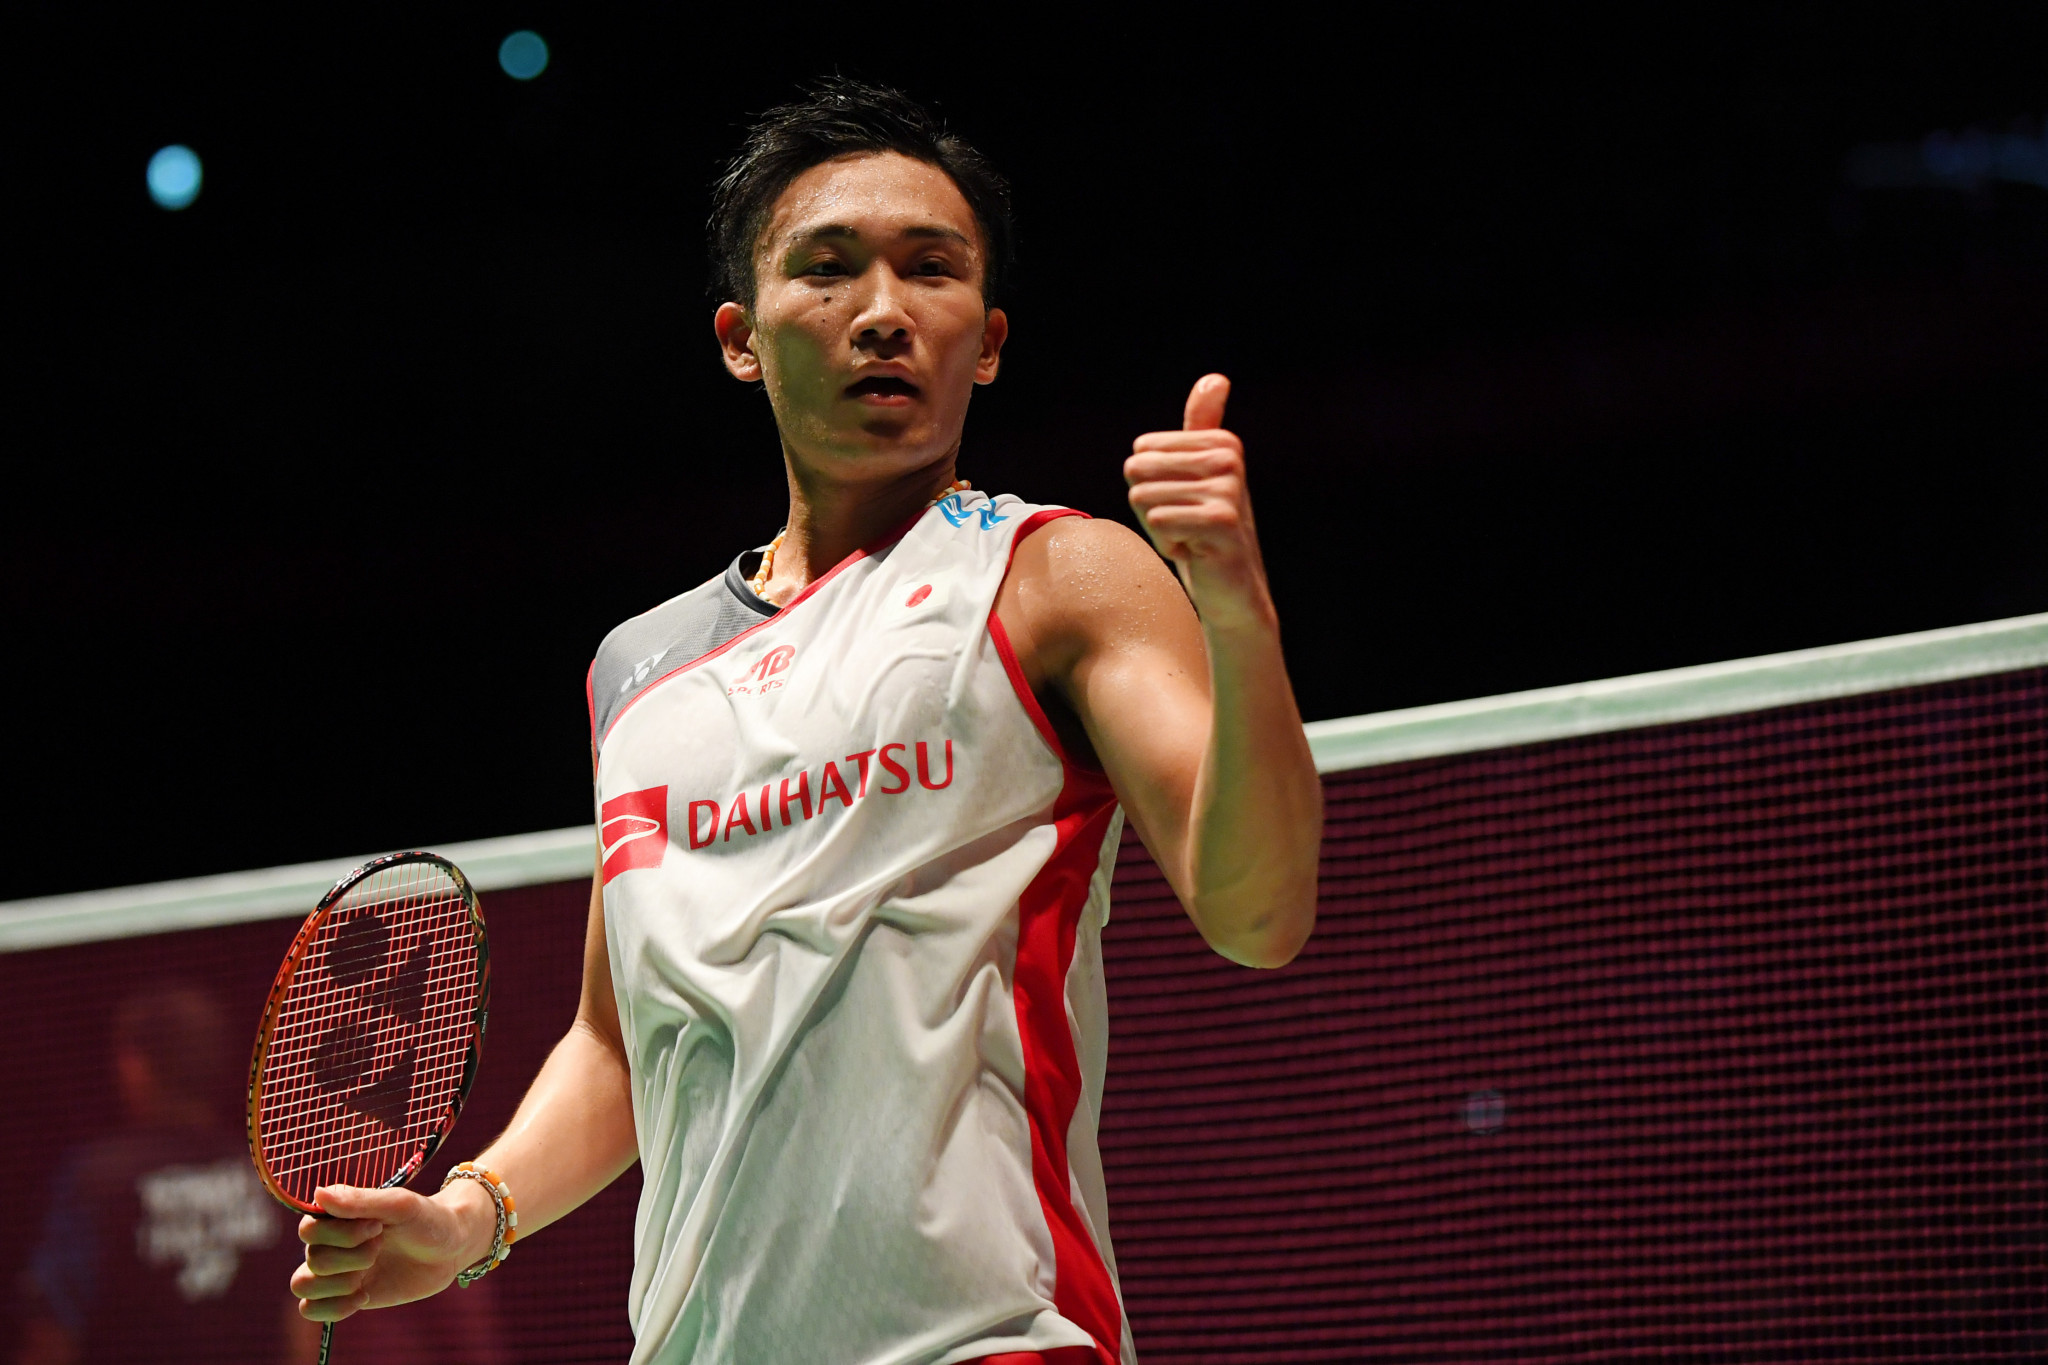 World champion Momota wins national badminton title to cap successful return to action